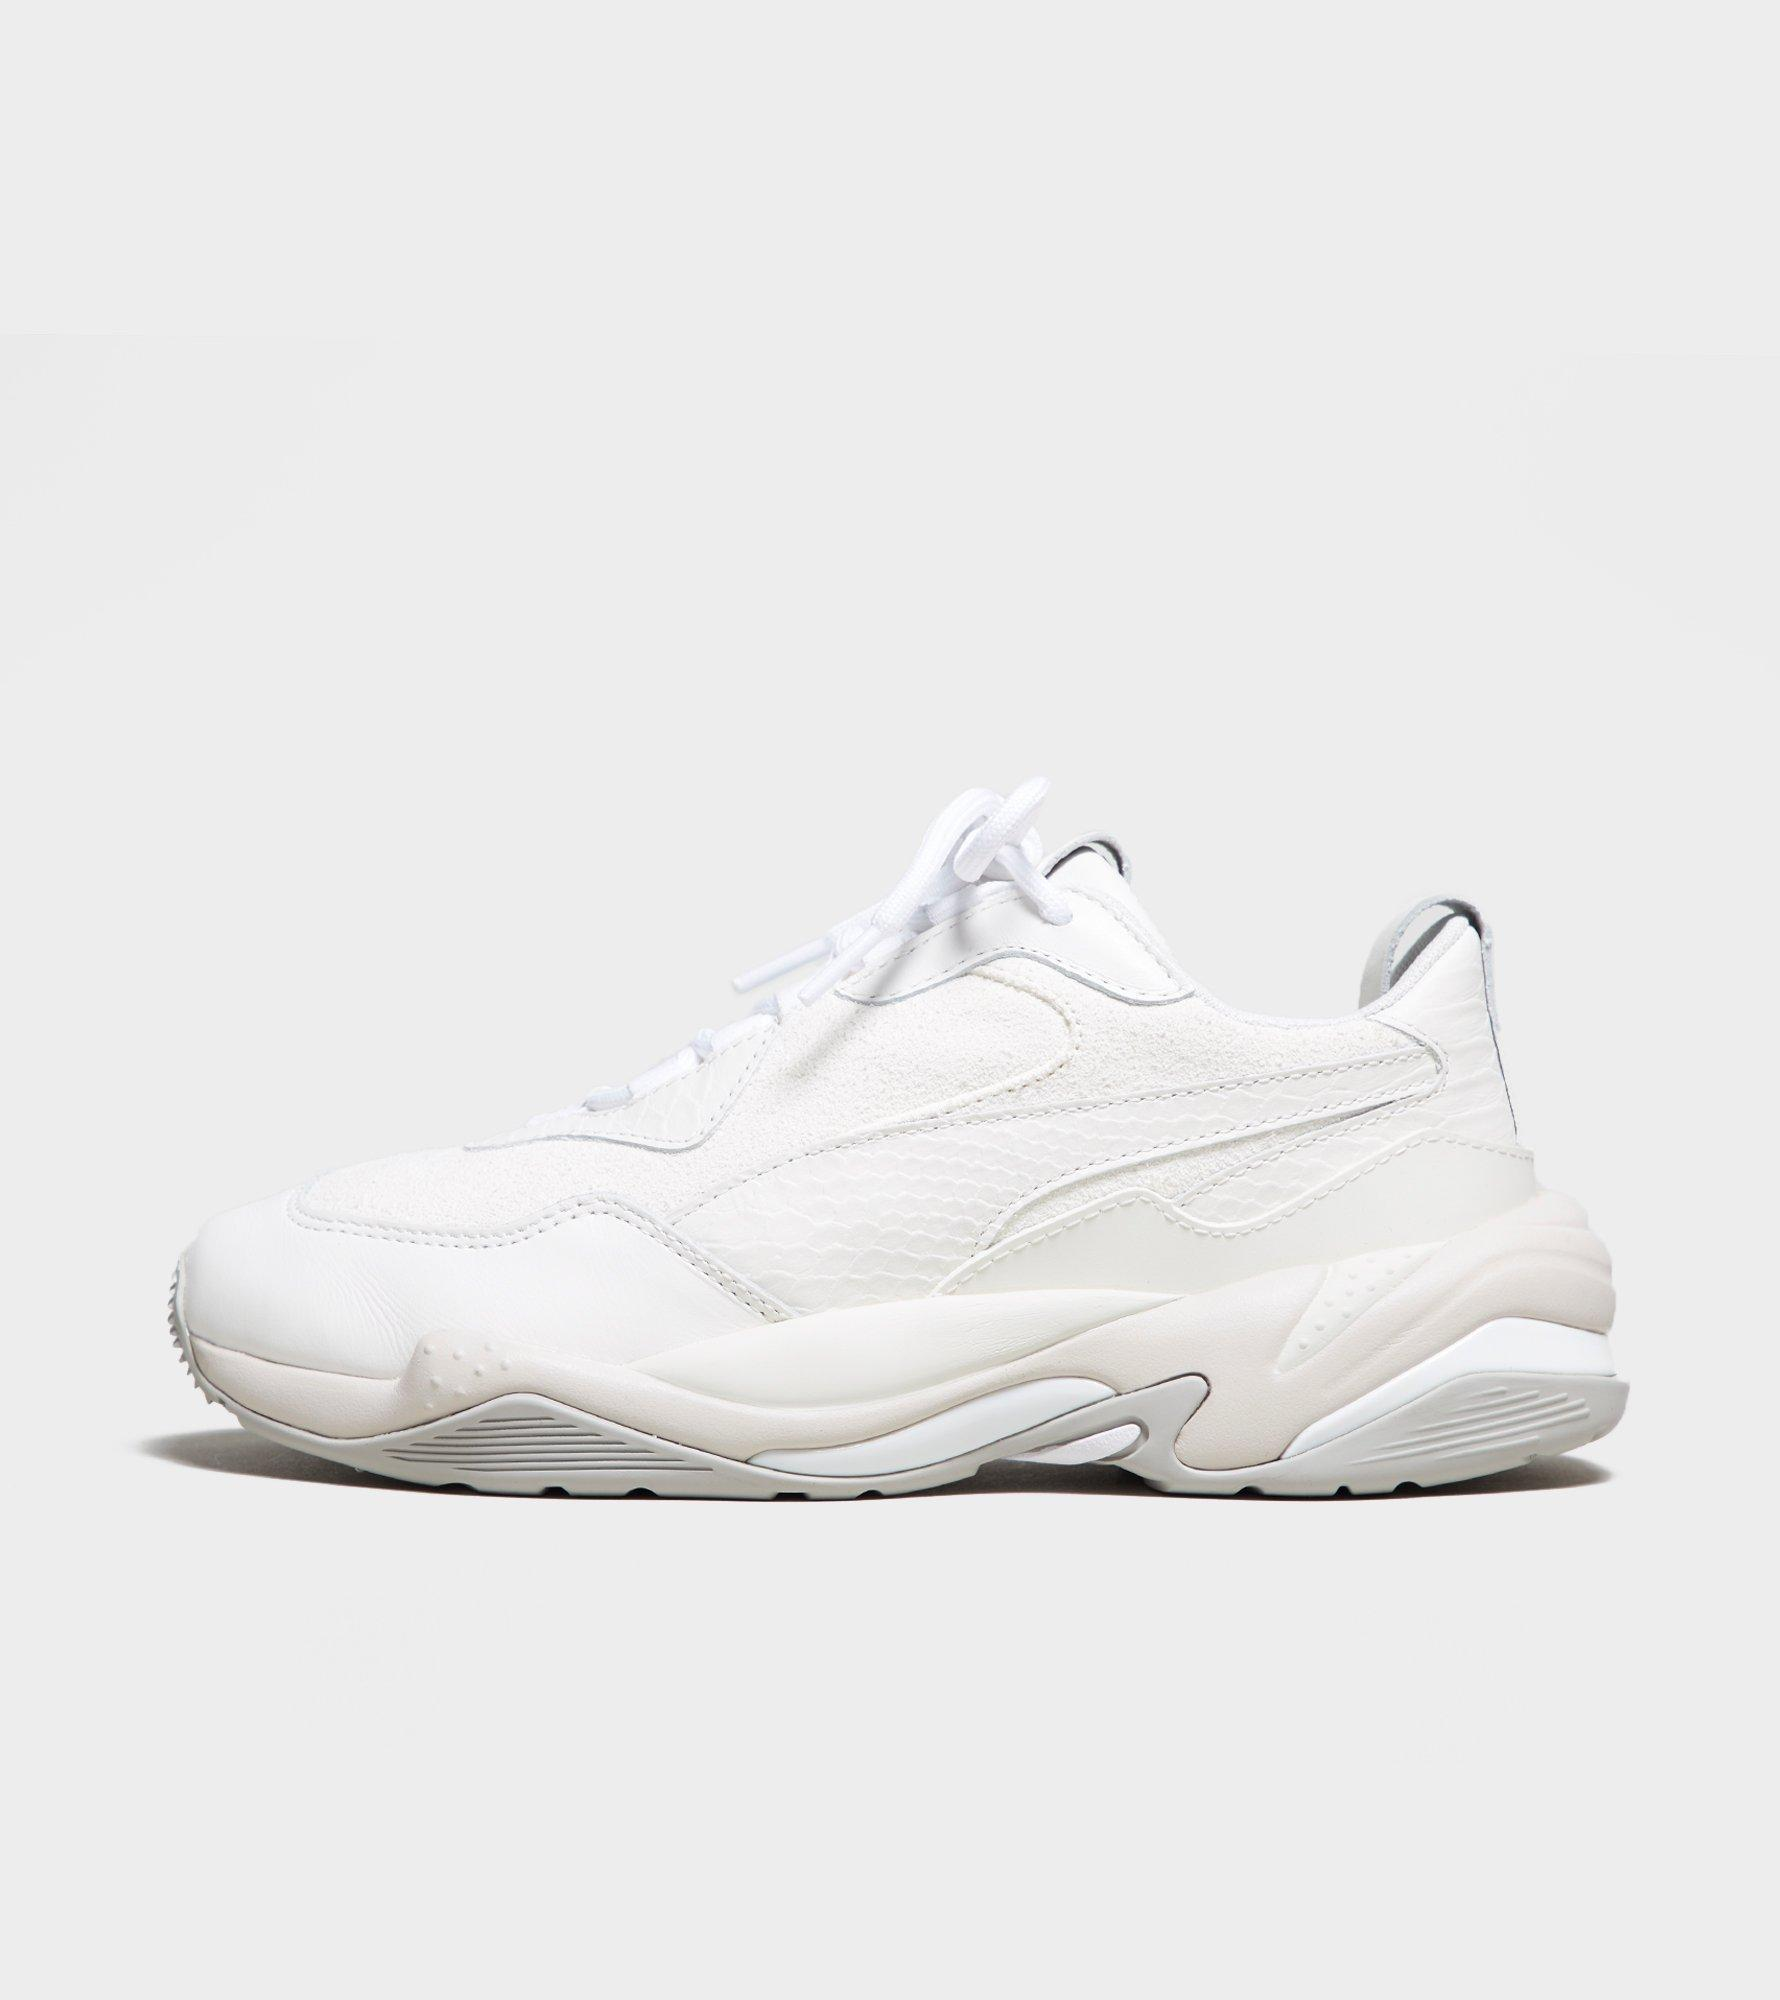 PUMA White Thunder Desert Women's